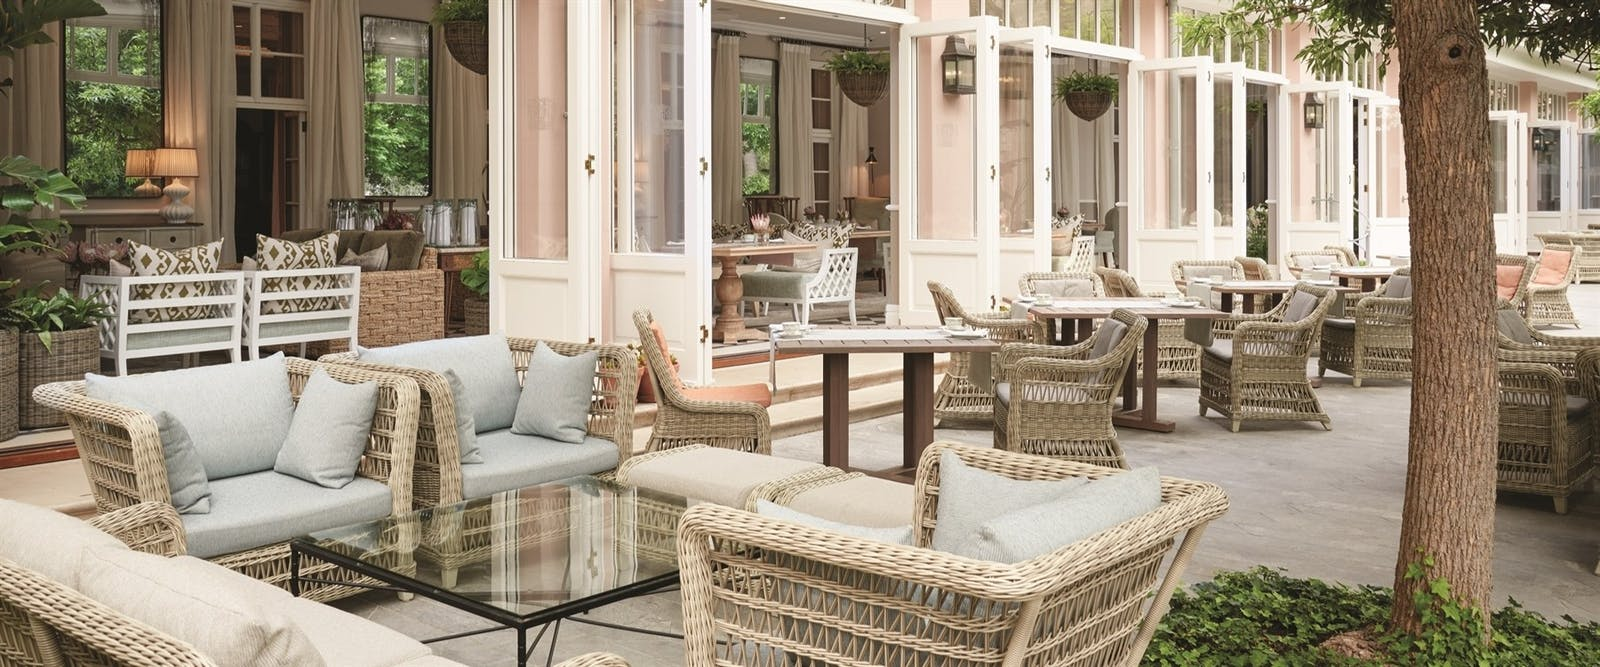 Outdoor Terrace at Belmond Mount Nelson Hotel, Cape Town